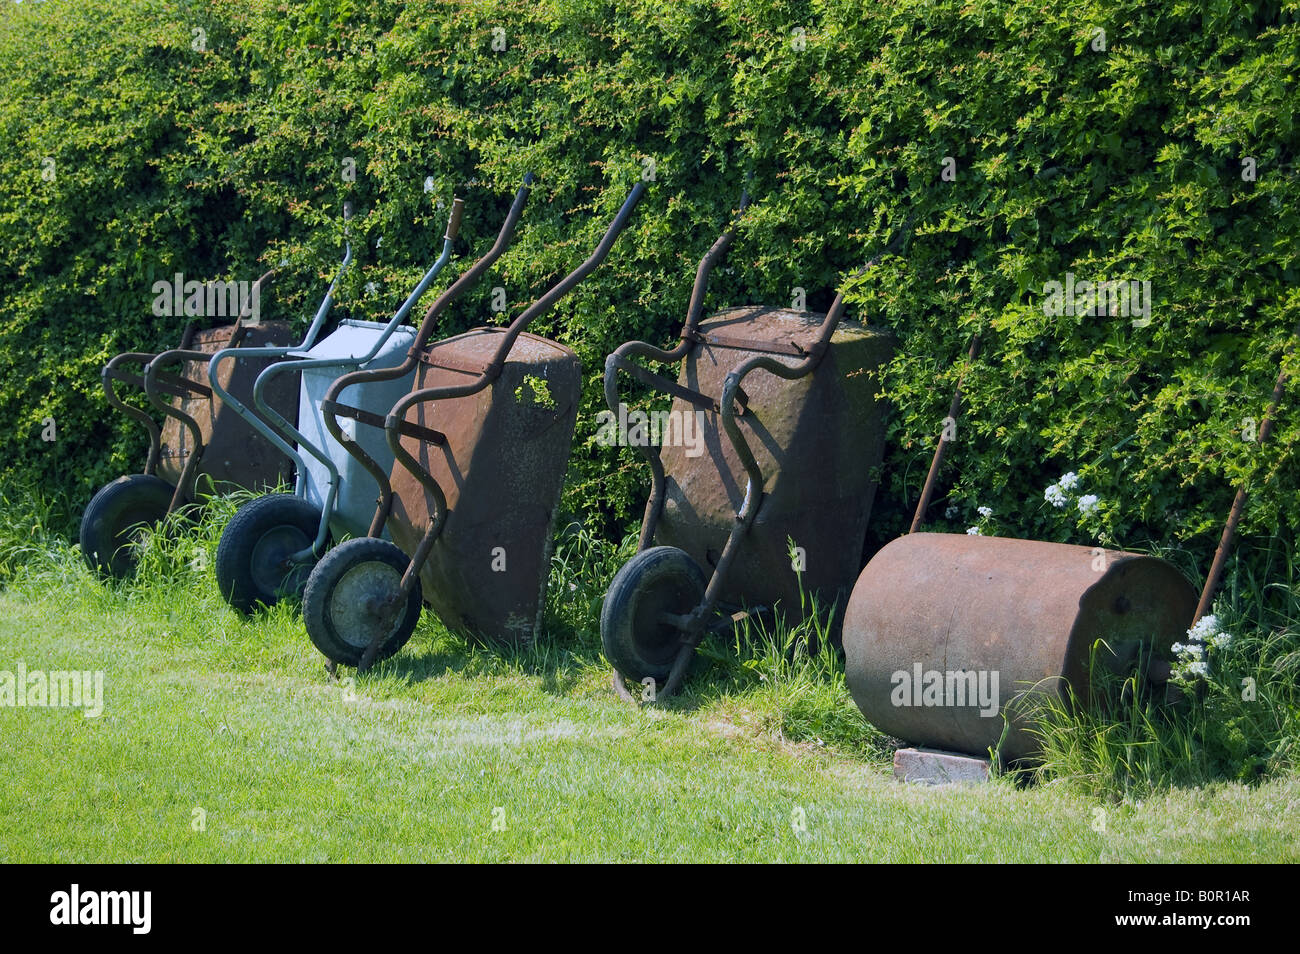 A line of wheelbarrows - Stock Image